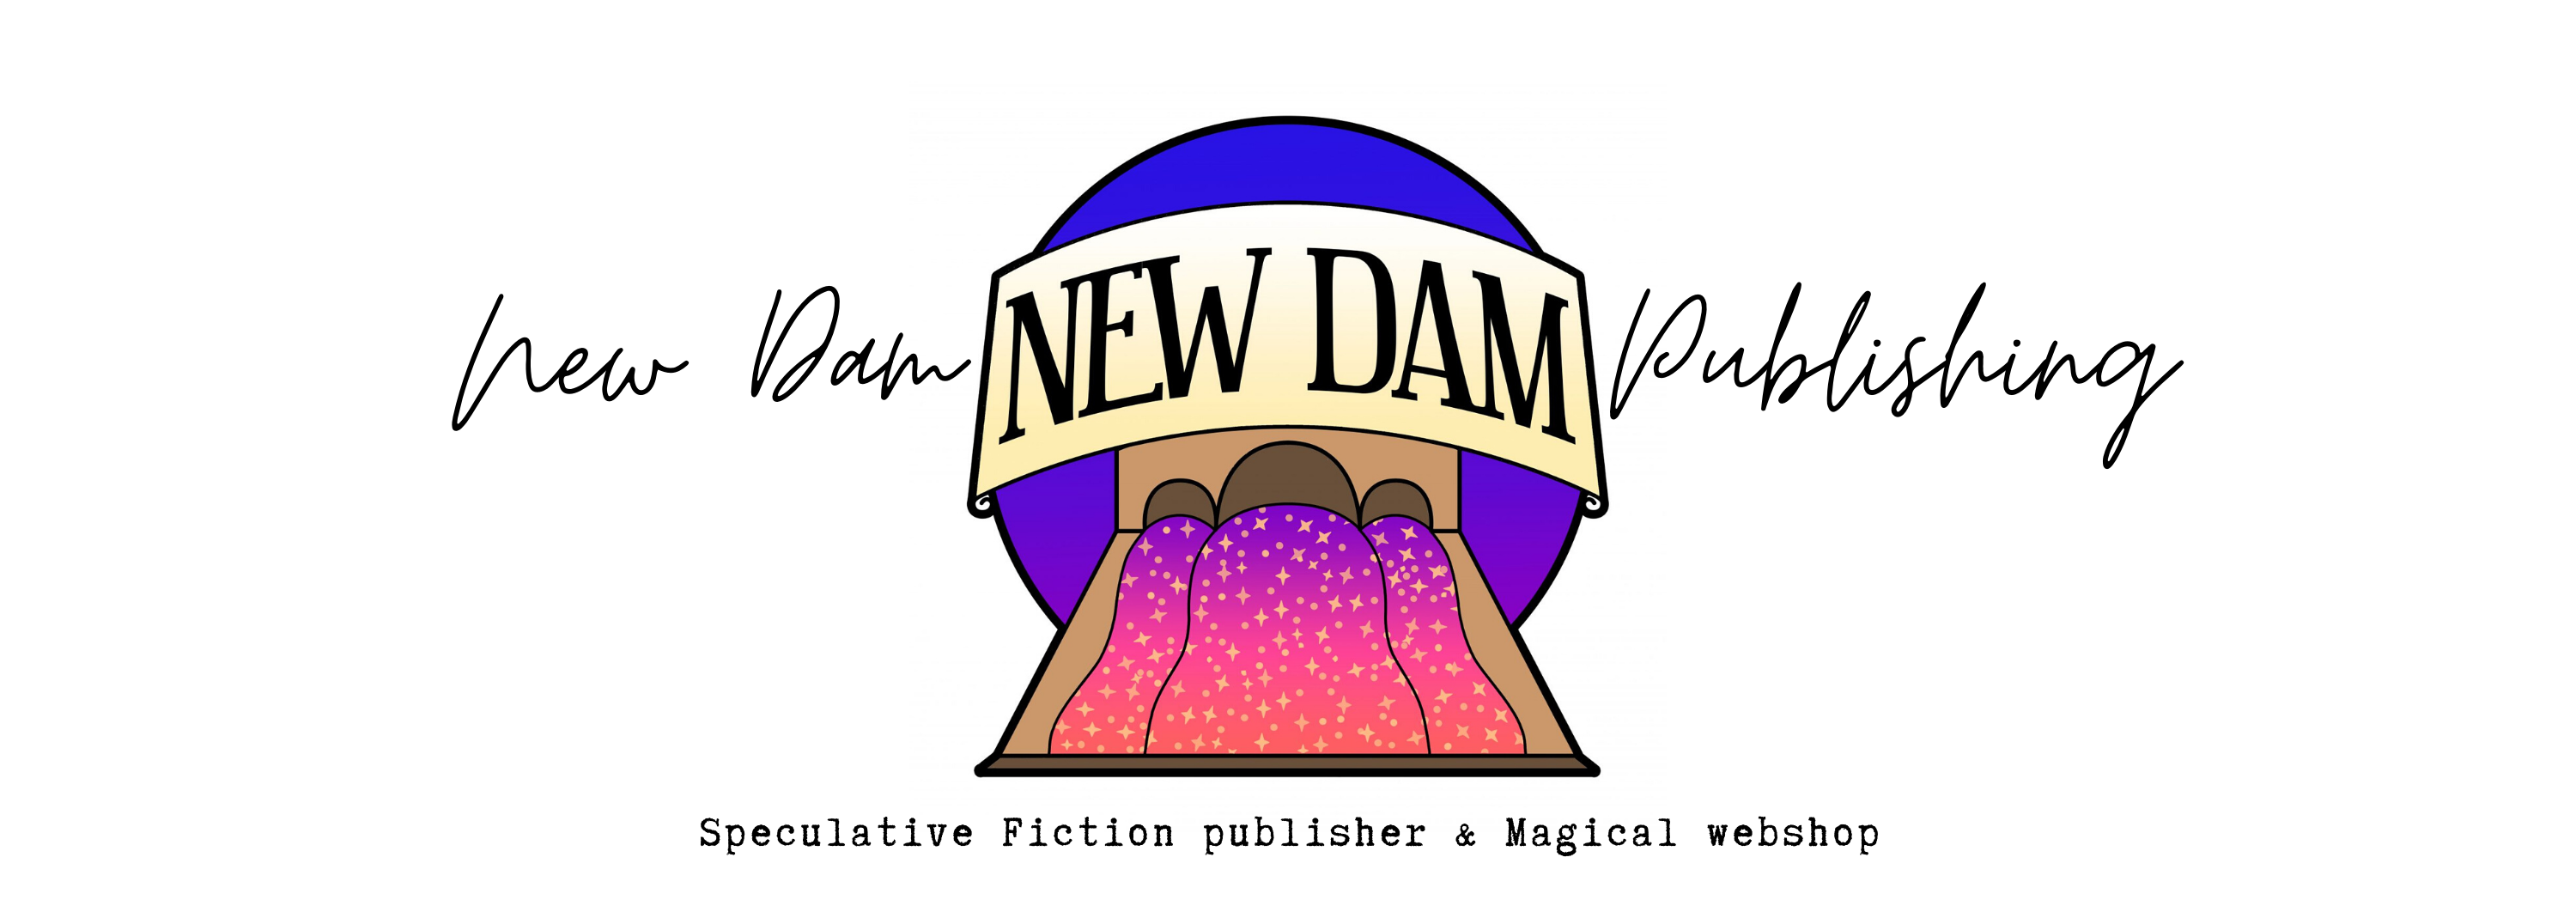 New Dam Publishing